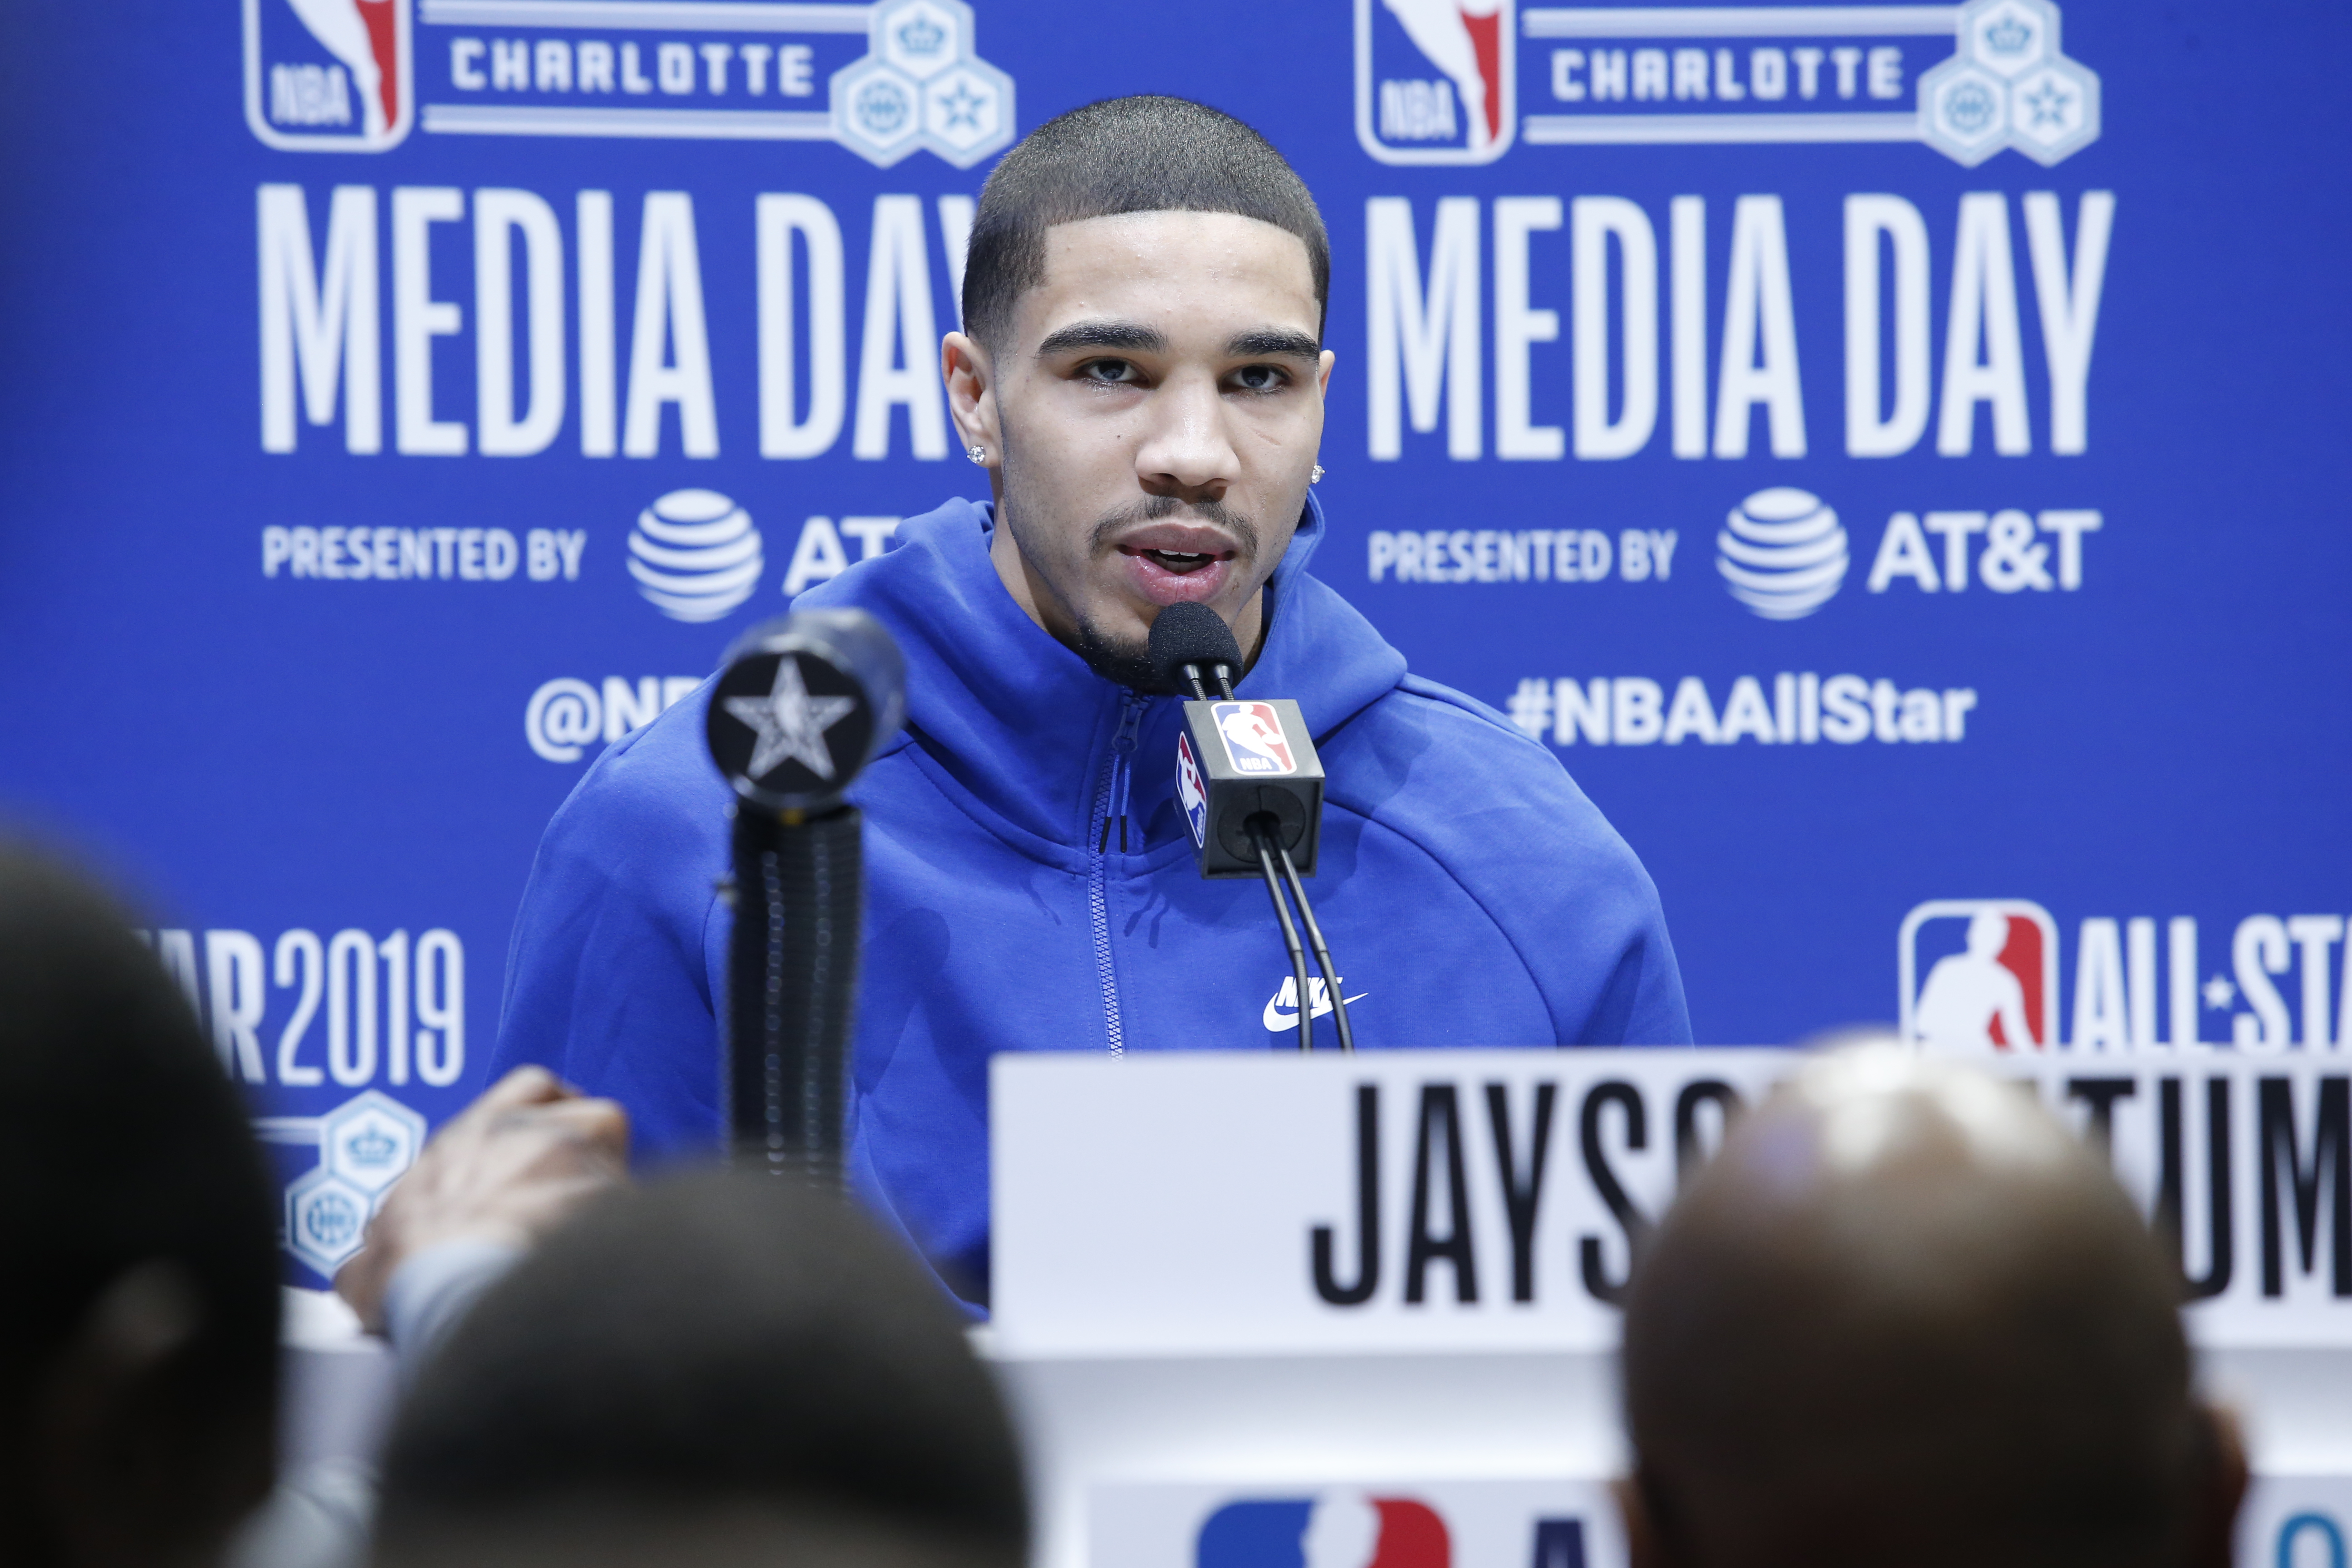 2019 NBA All-Stars talk favorite J. Cole songs, which artist they would have perform the halftime show